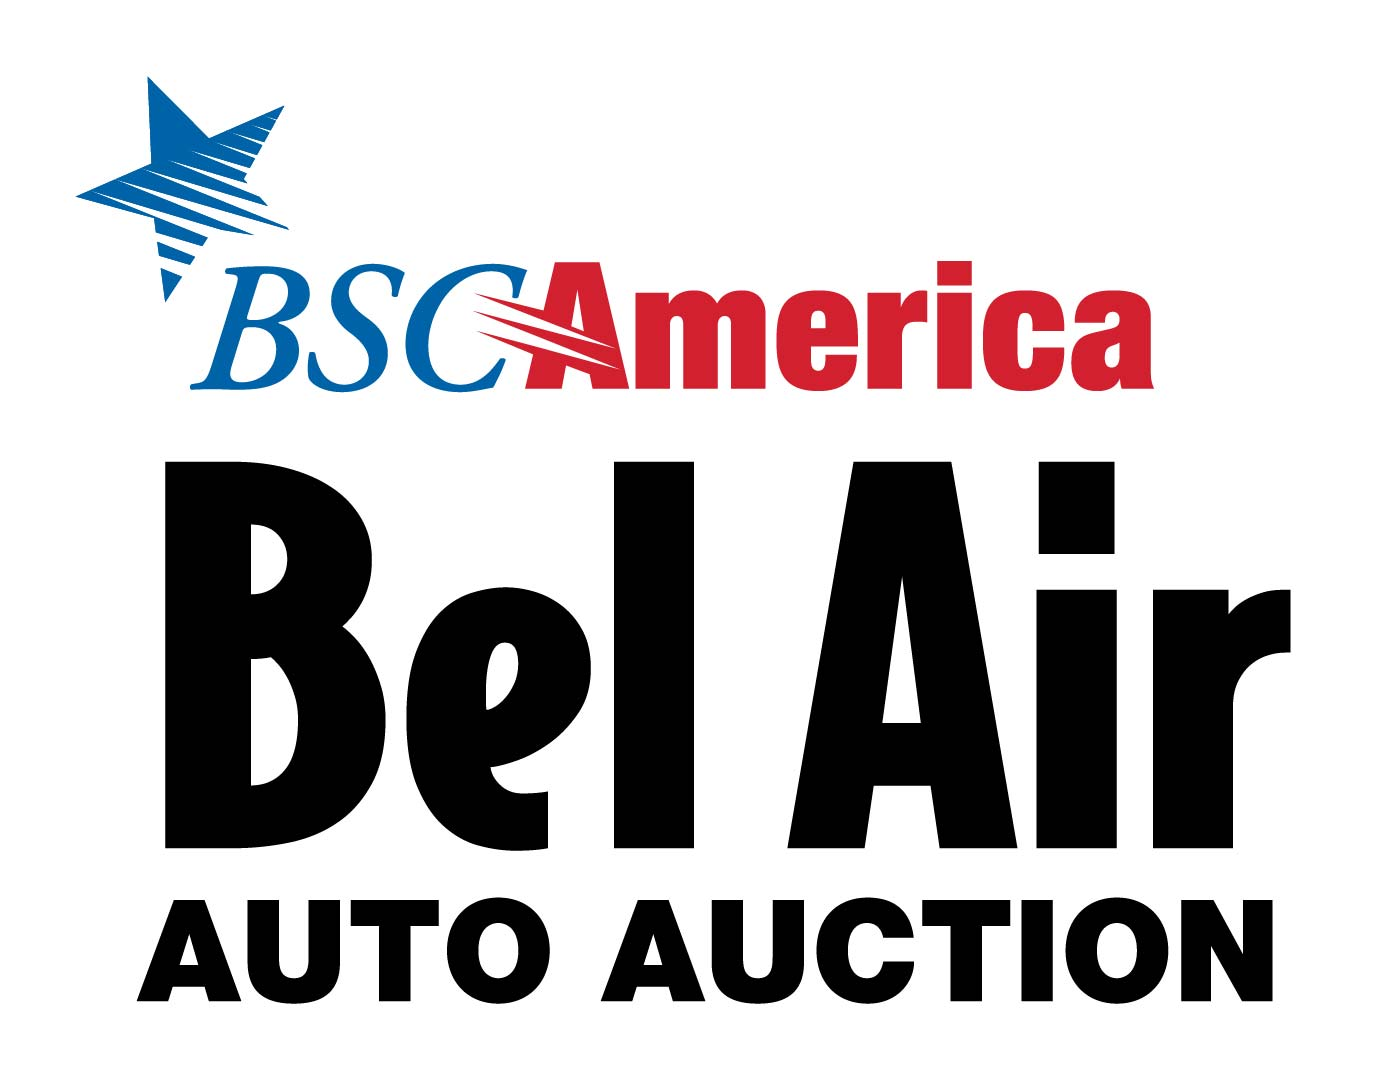 4805 Philadelphia Road Belcamp, Maryland 21017 Phone: (410) 879-7950 FAX: (410) 893-1515   www.bscamerica.com  Email:  mnichols@bscamerica.com    Sale Day is Thursday!